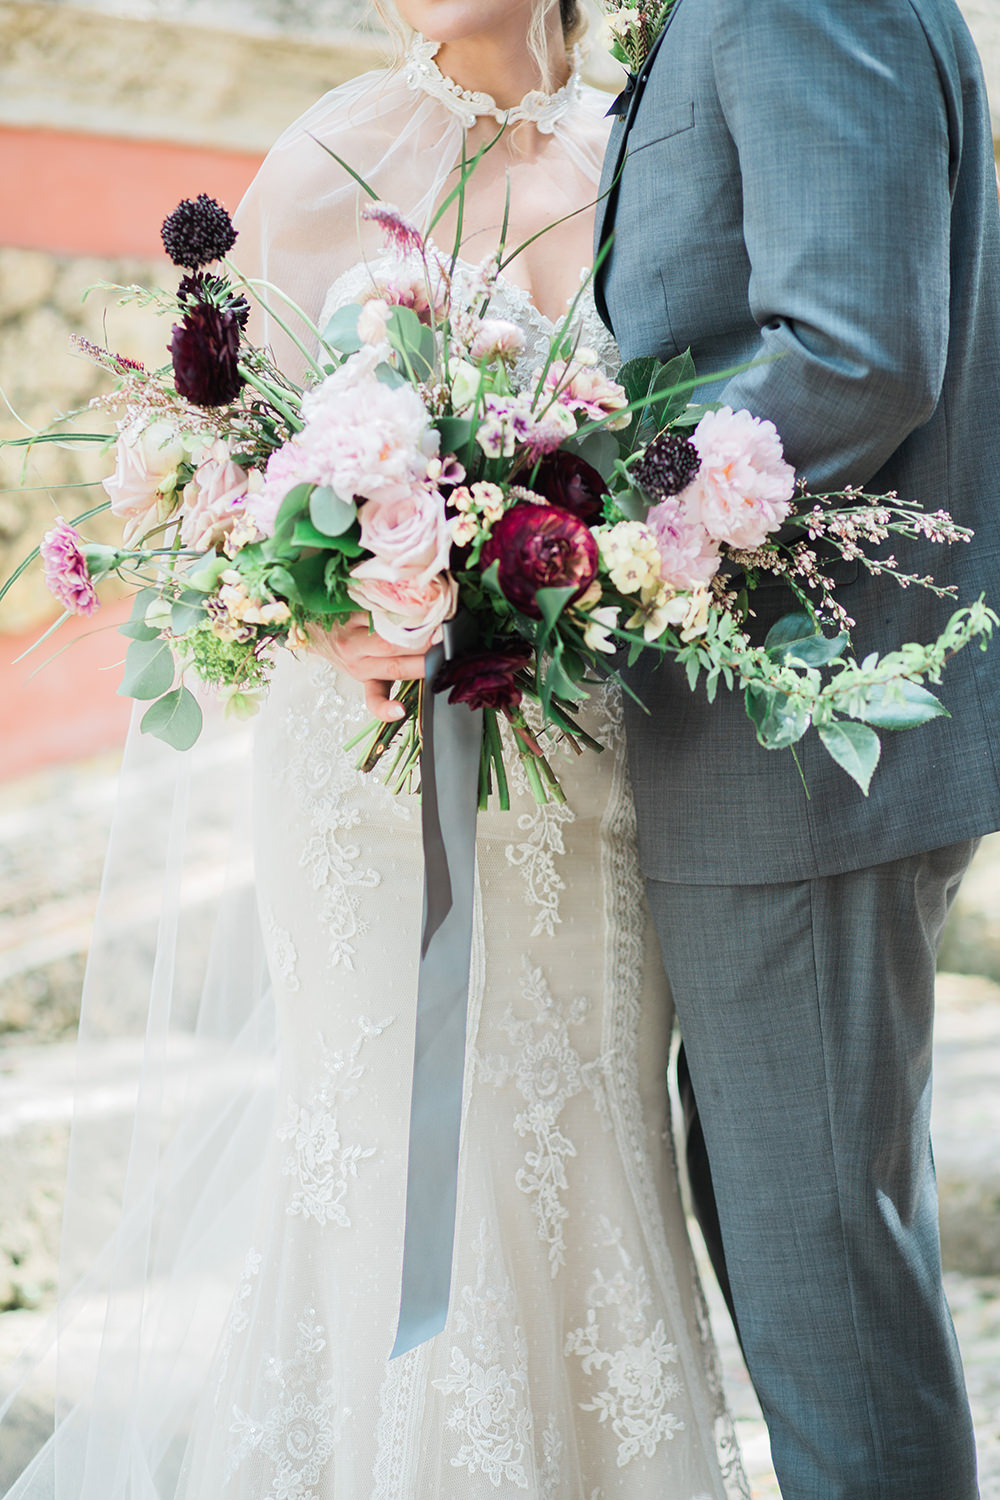 romantic wedding bouquets - photo by Erica J Photography http://ruffledblog.com/old-world-wedding-editorial-at-vizcaya-museum